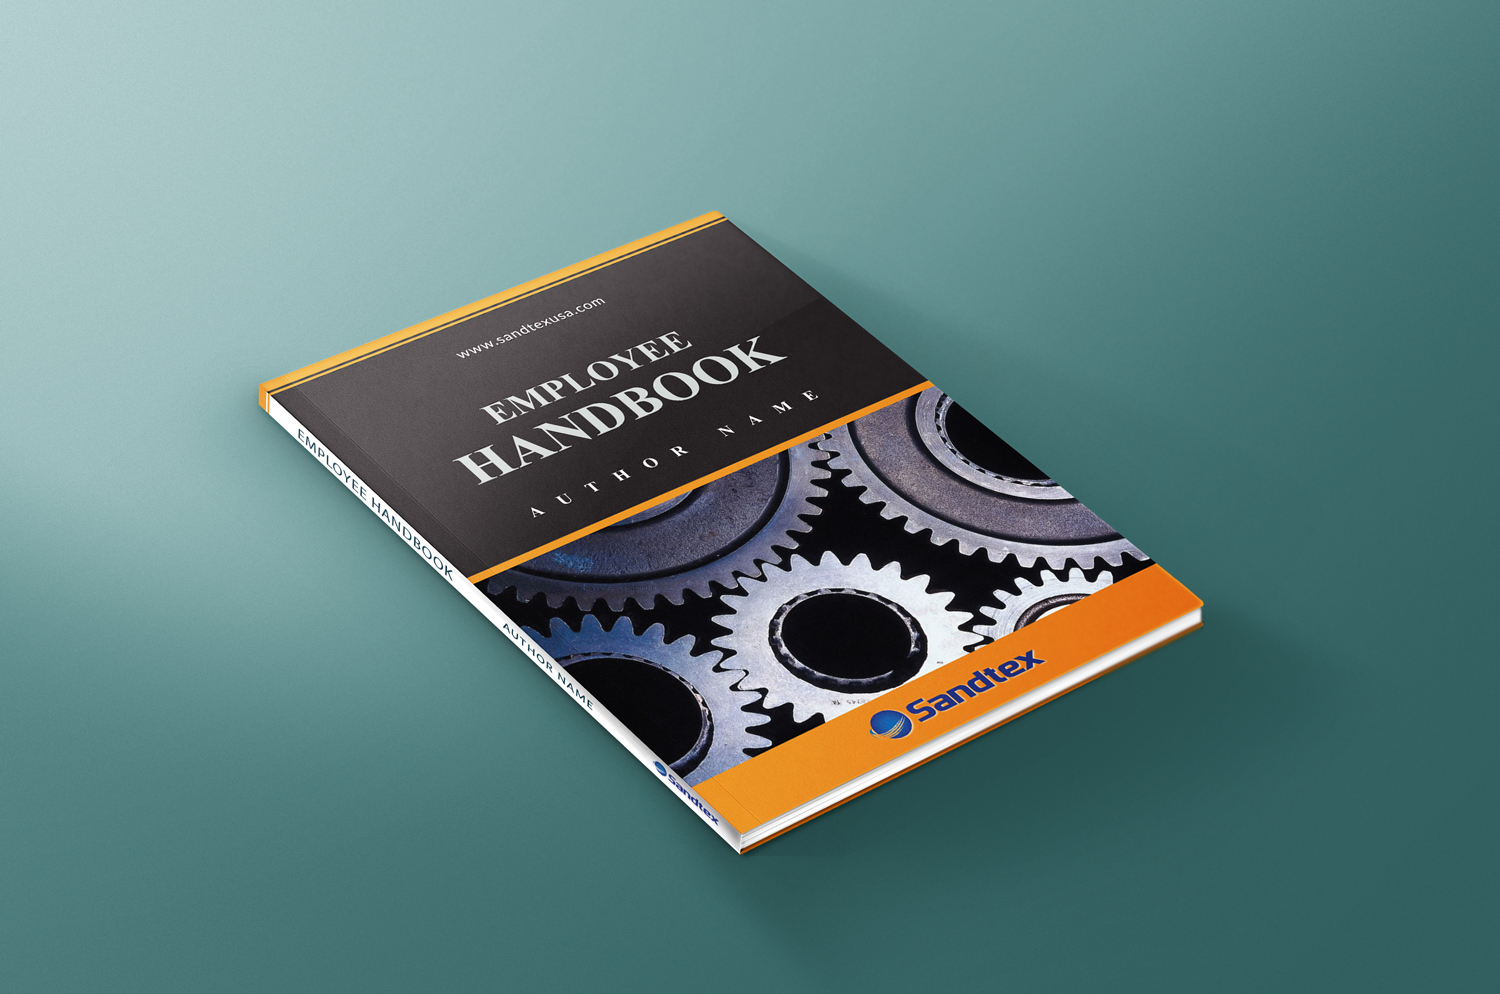 Book cover design by designmoment design 13271473 for Employee handbook cover design template